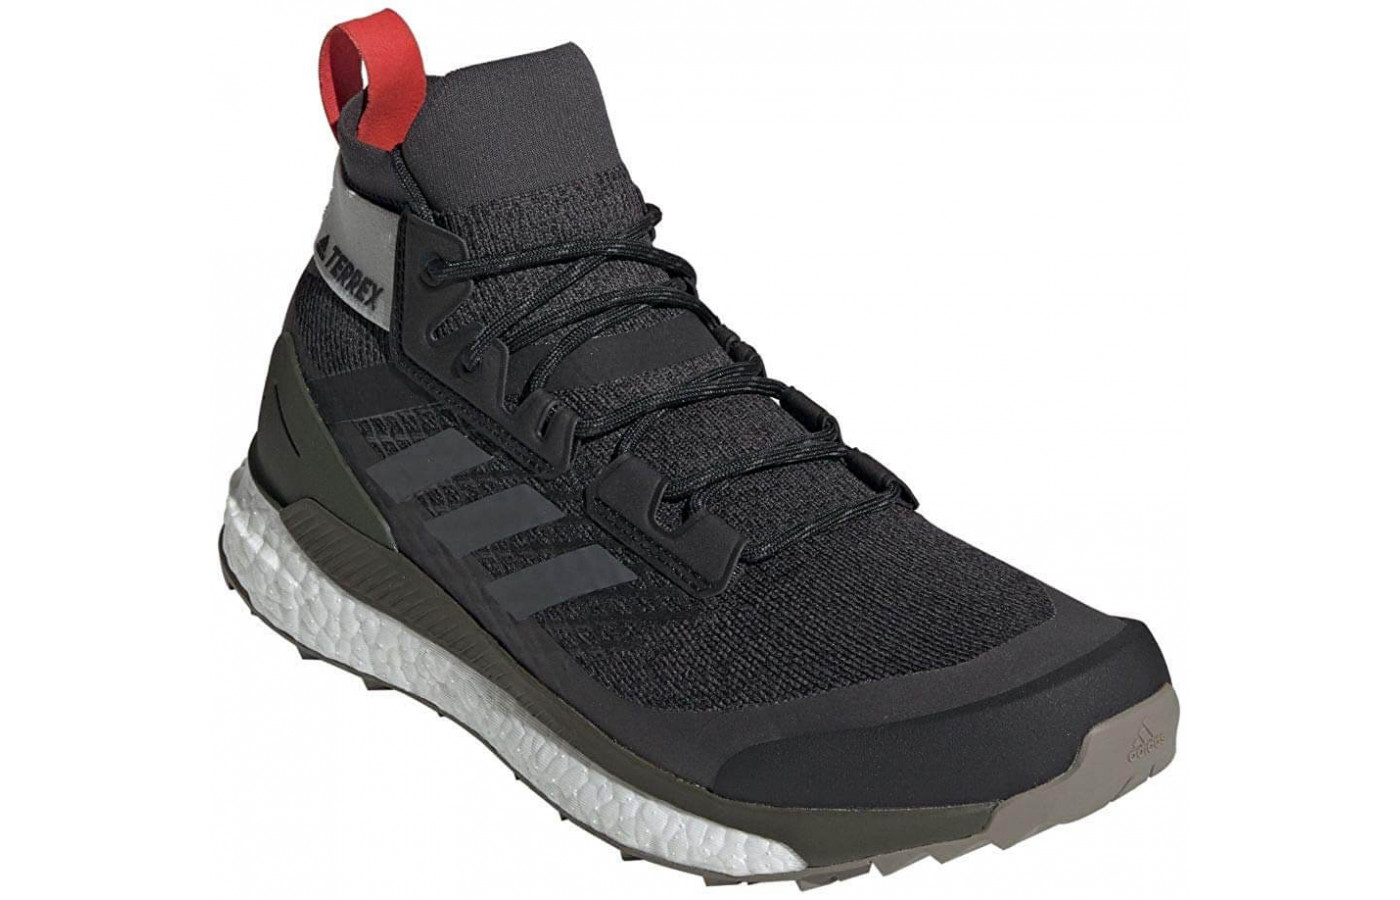 2f49b4fe258f5 Adidas Outdoor Terrex Free - To Buy or Not in June 2019?